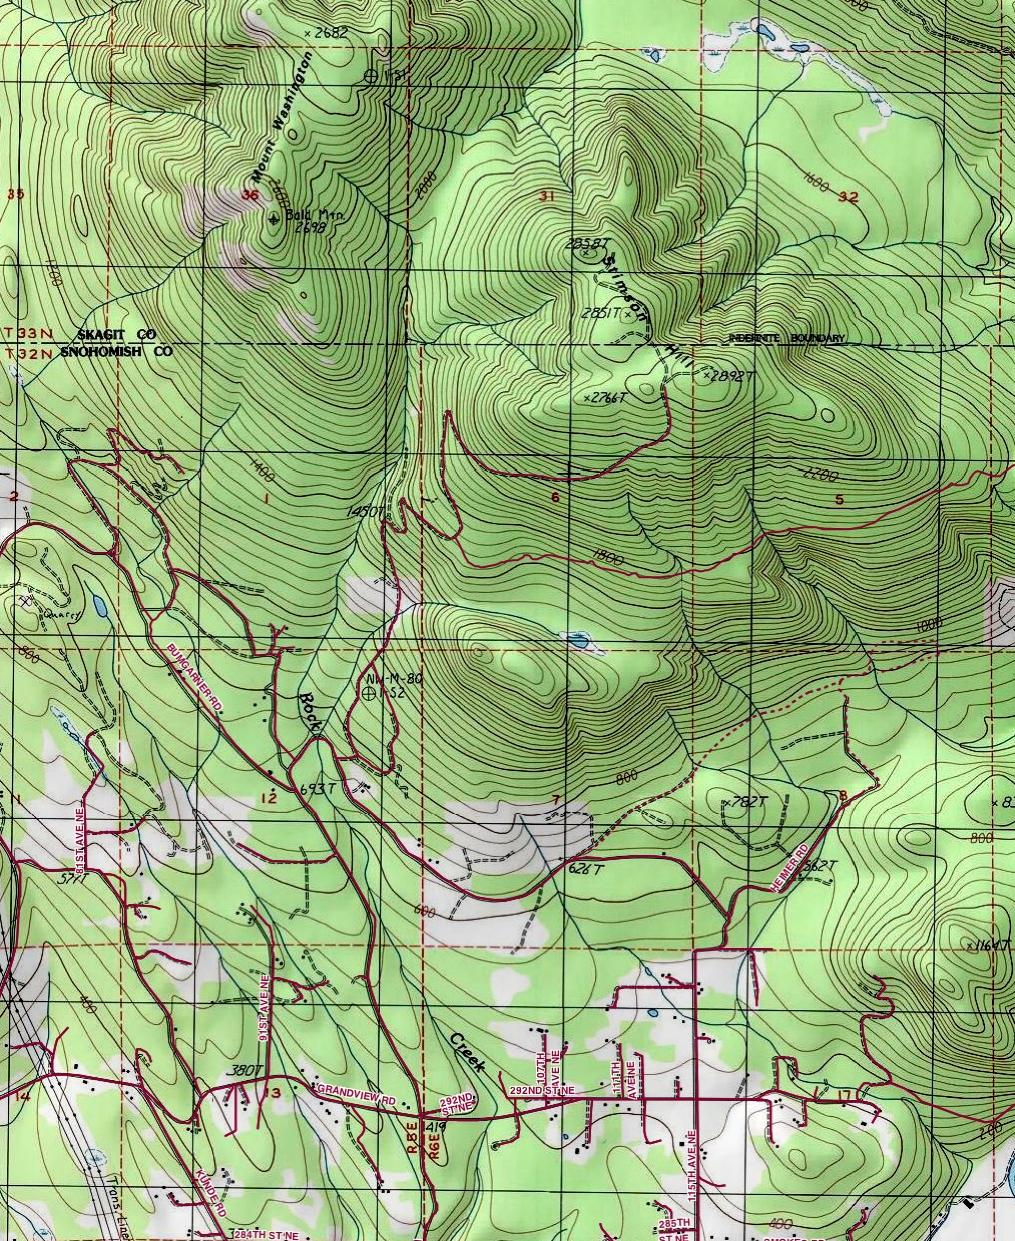 TOPO OF THE ROUTE TO STIMSON